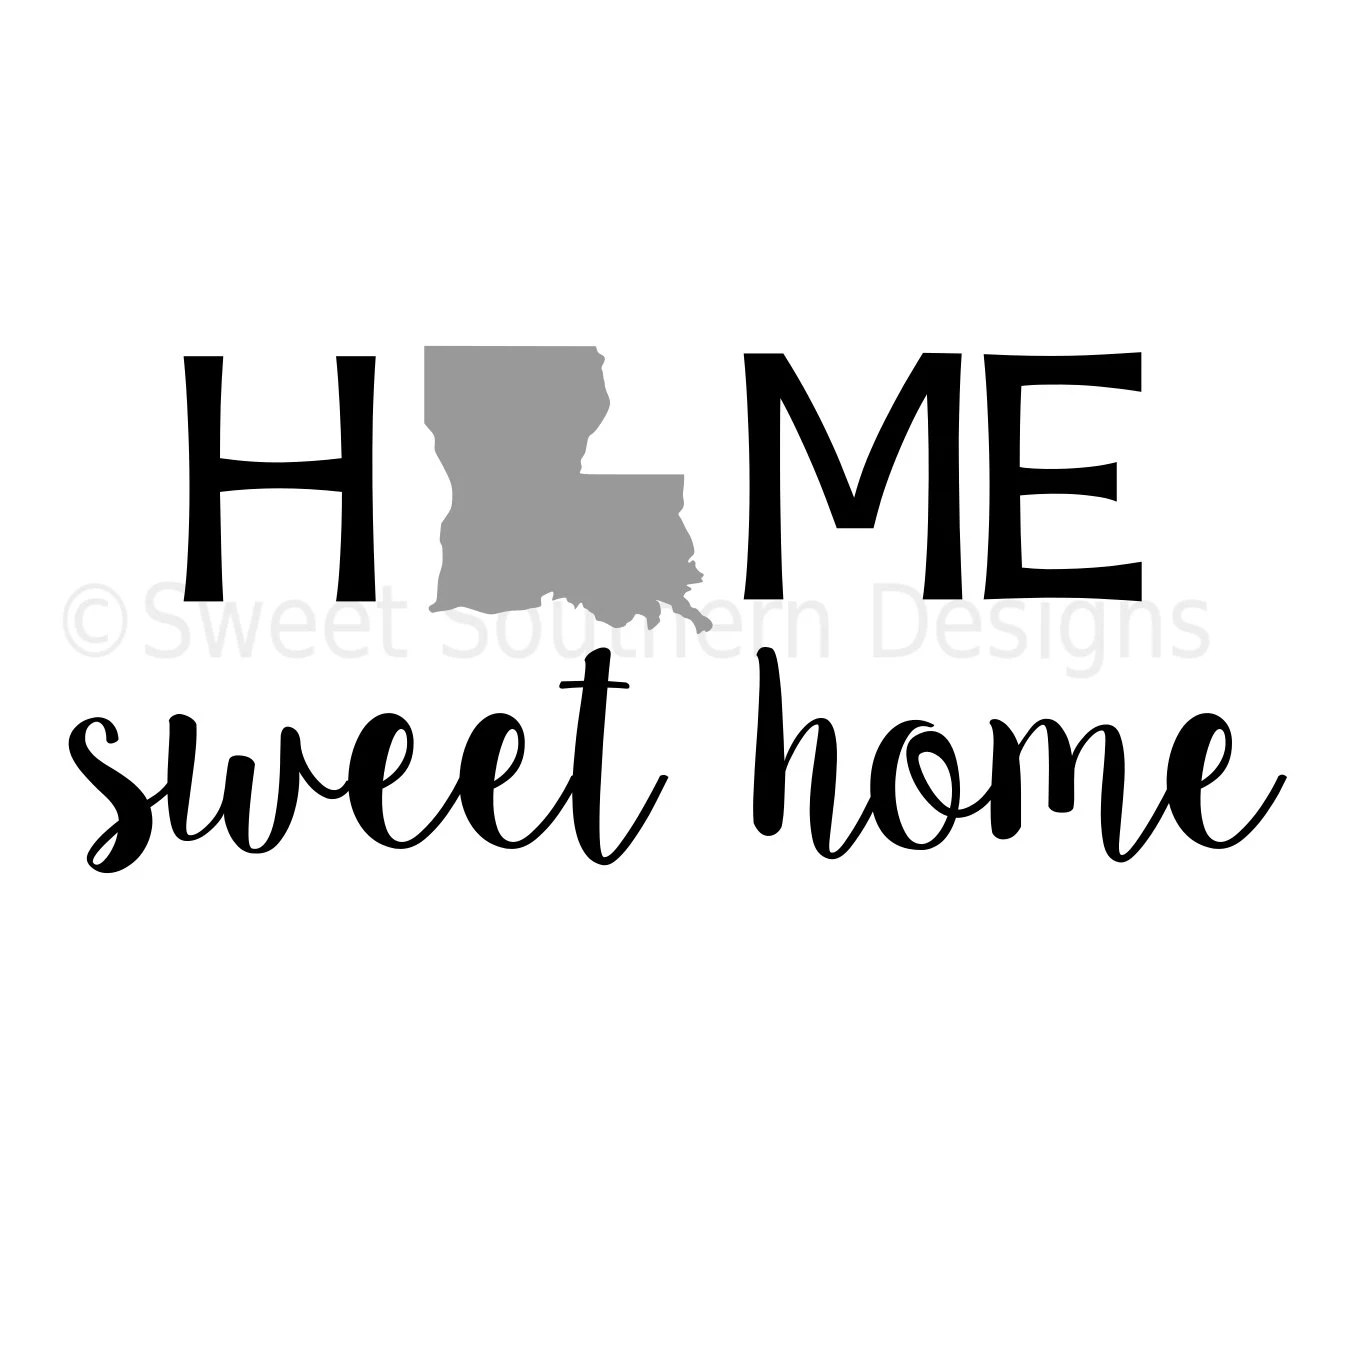 Home Sweet Home Louisiana Dxf Svg Instant Download Design For